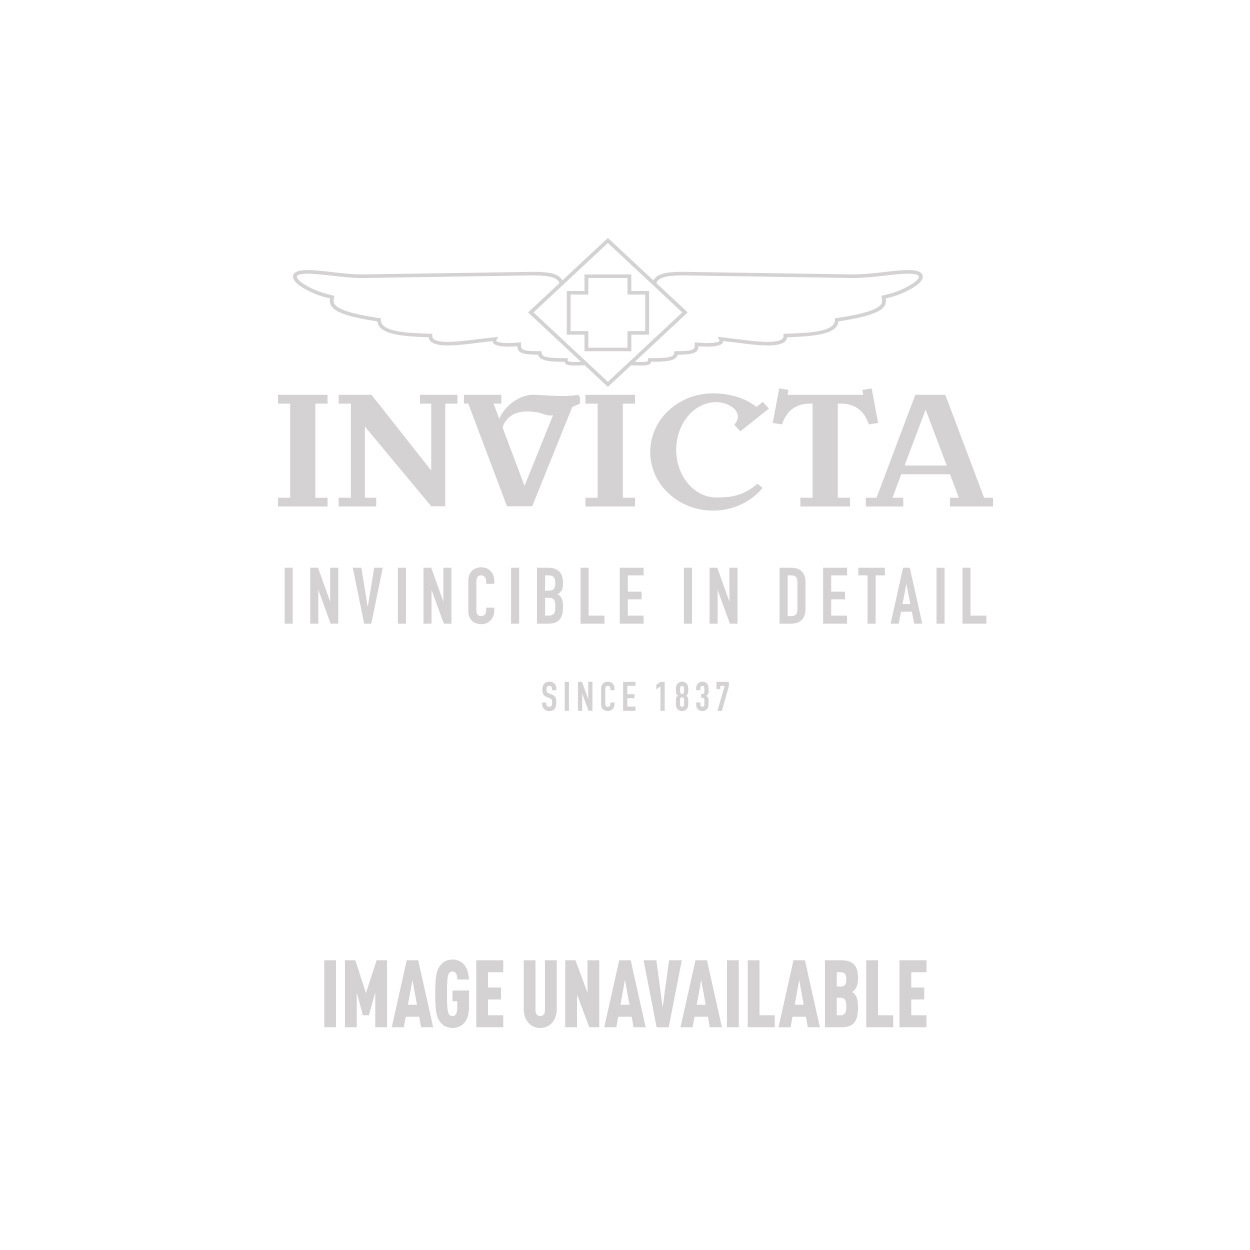 Invicta Angel Swiss Movement Quartz Watch - Stainless Steel case with Steel, White tone Stainless Steel, Ceramic band - Model 1779